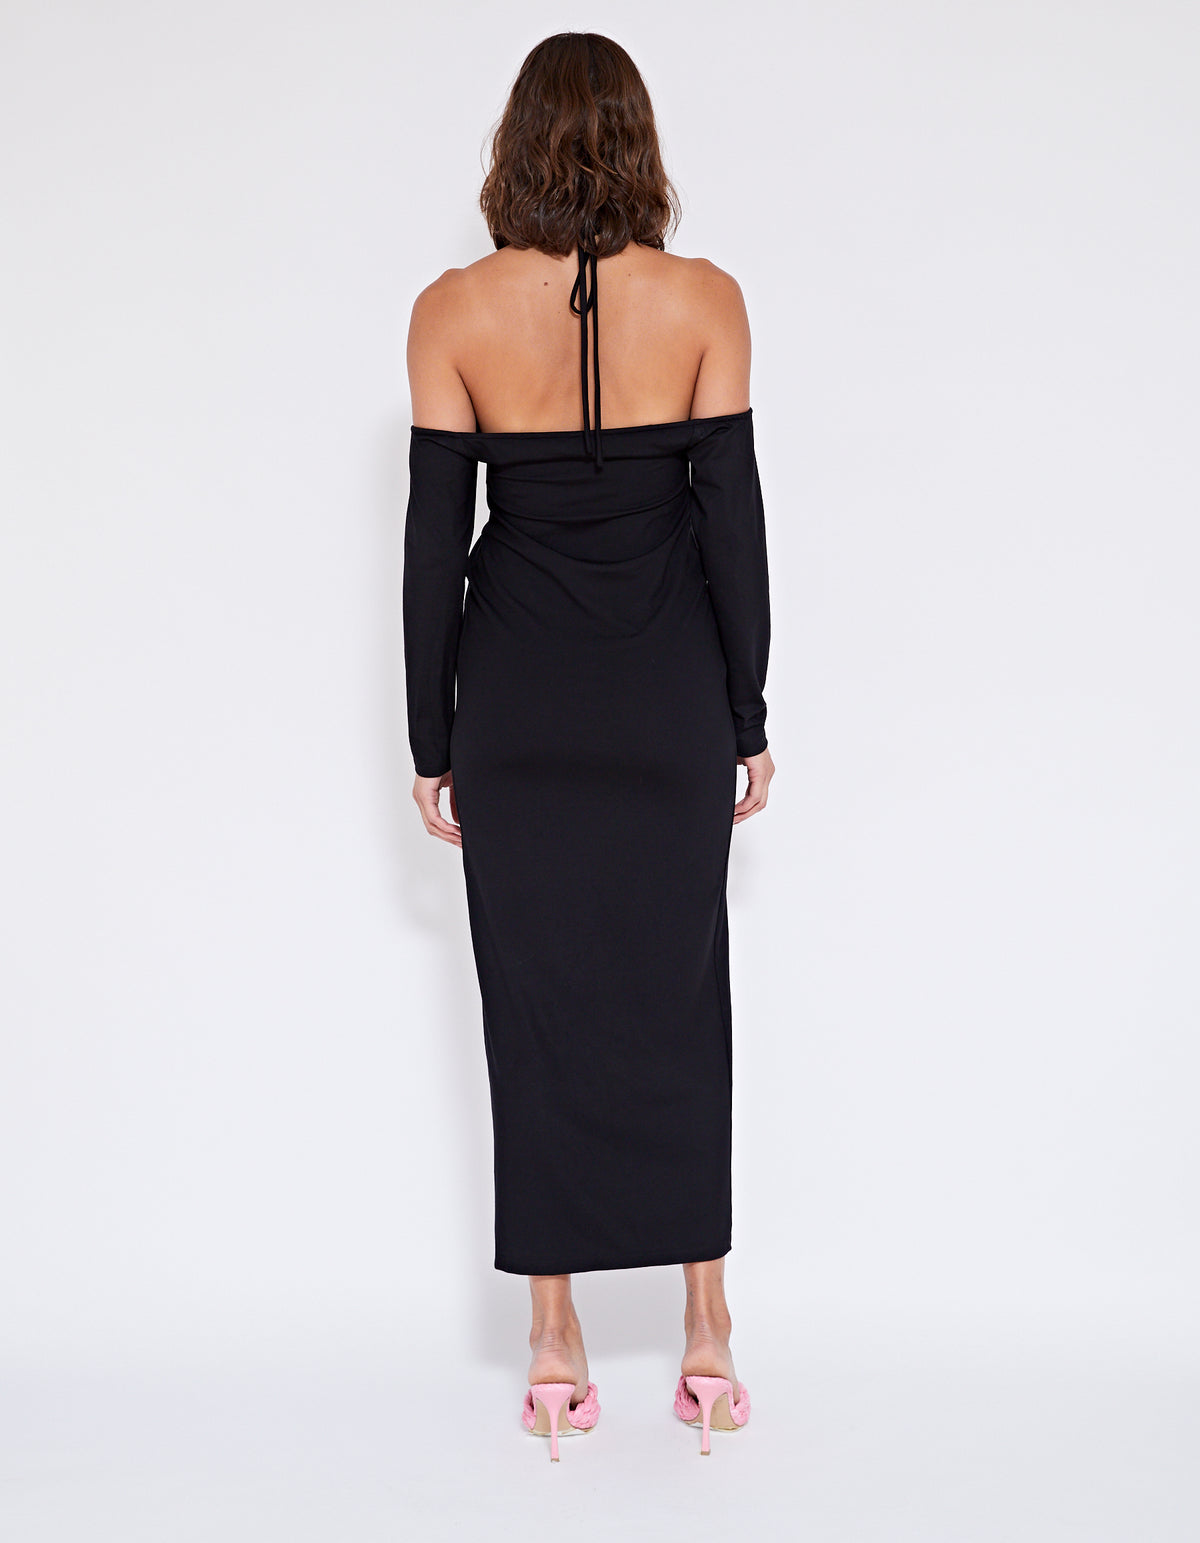 JEFFERSON DRESS | BLACK